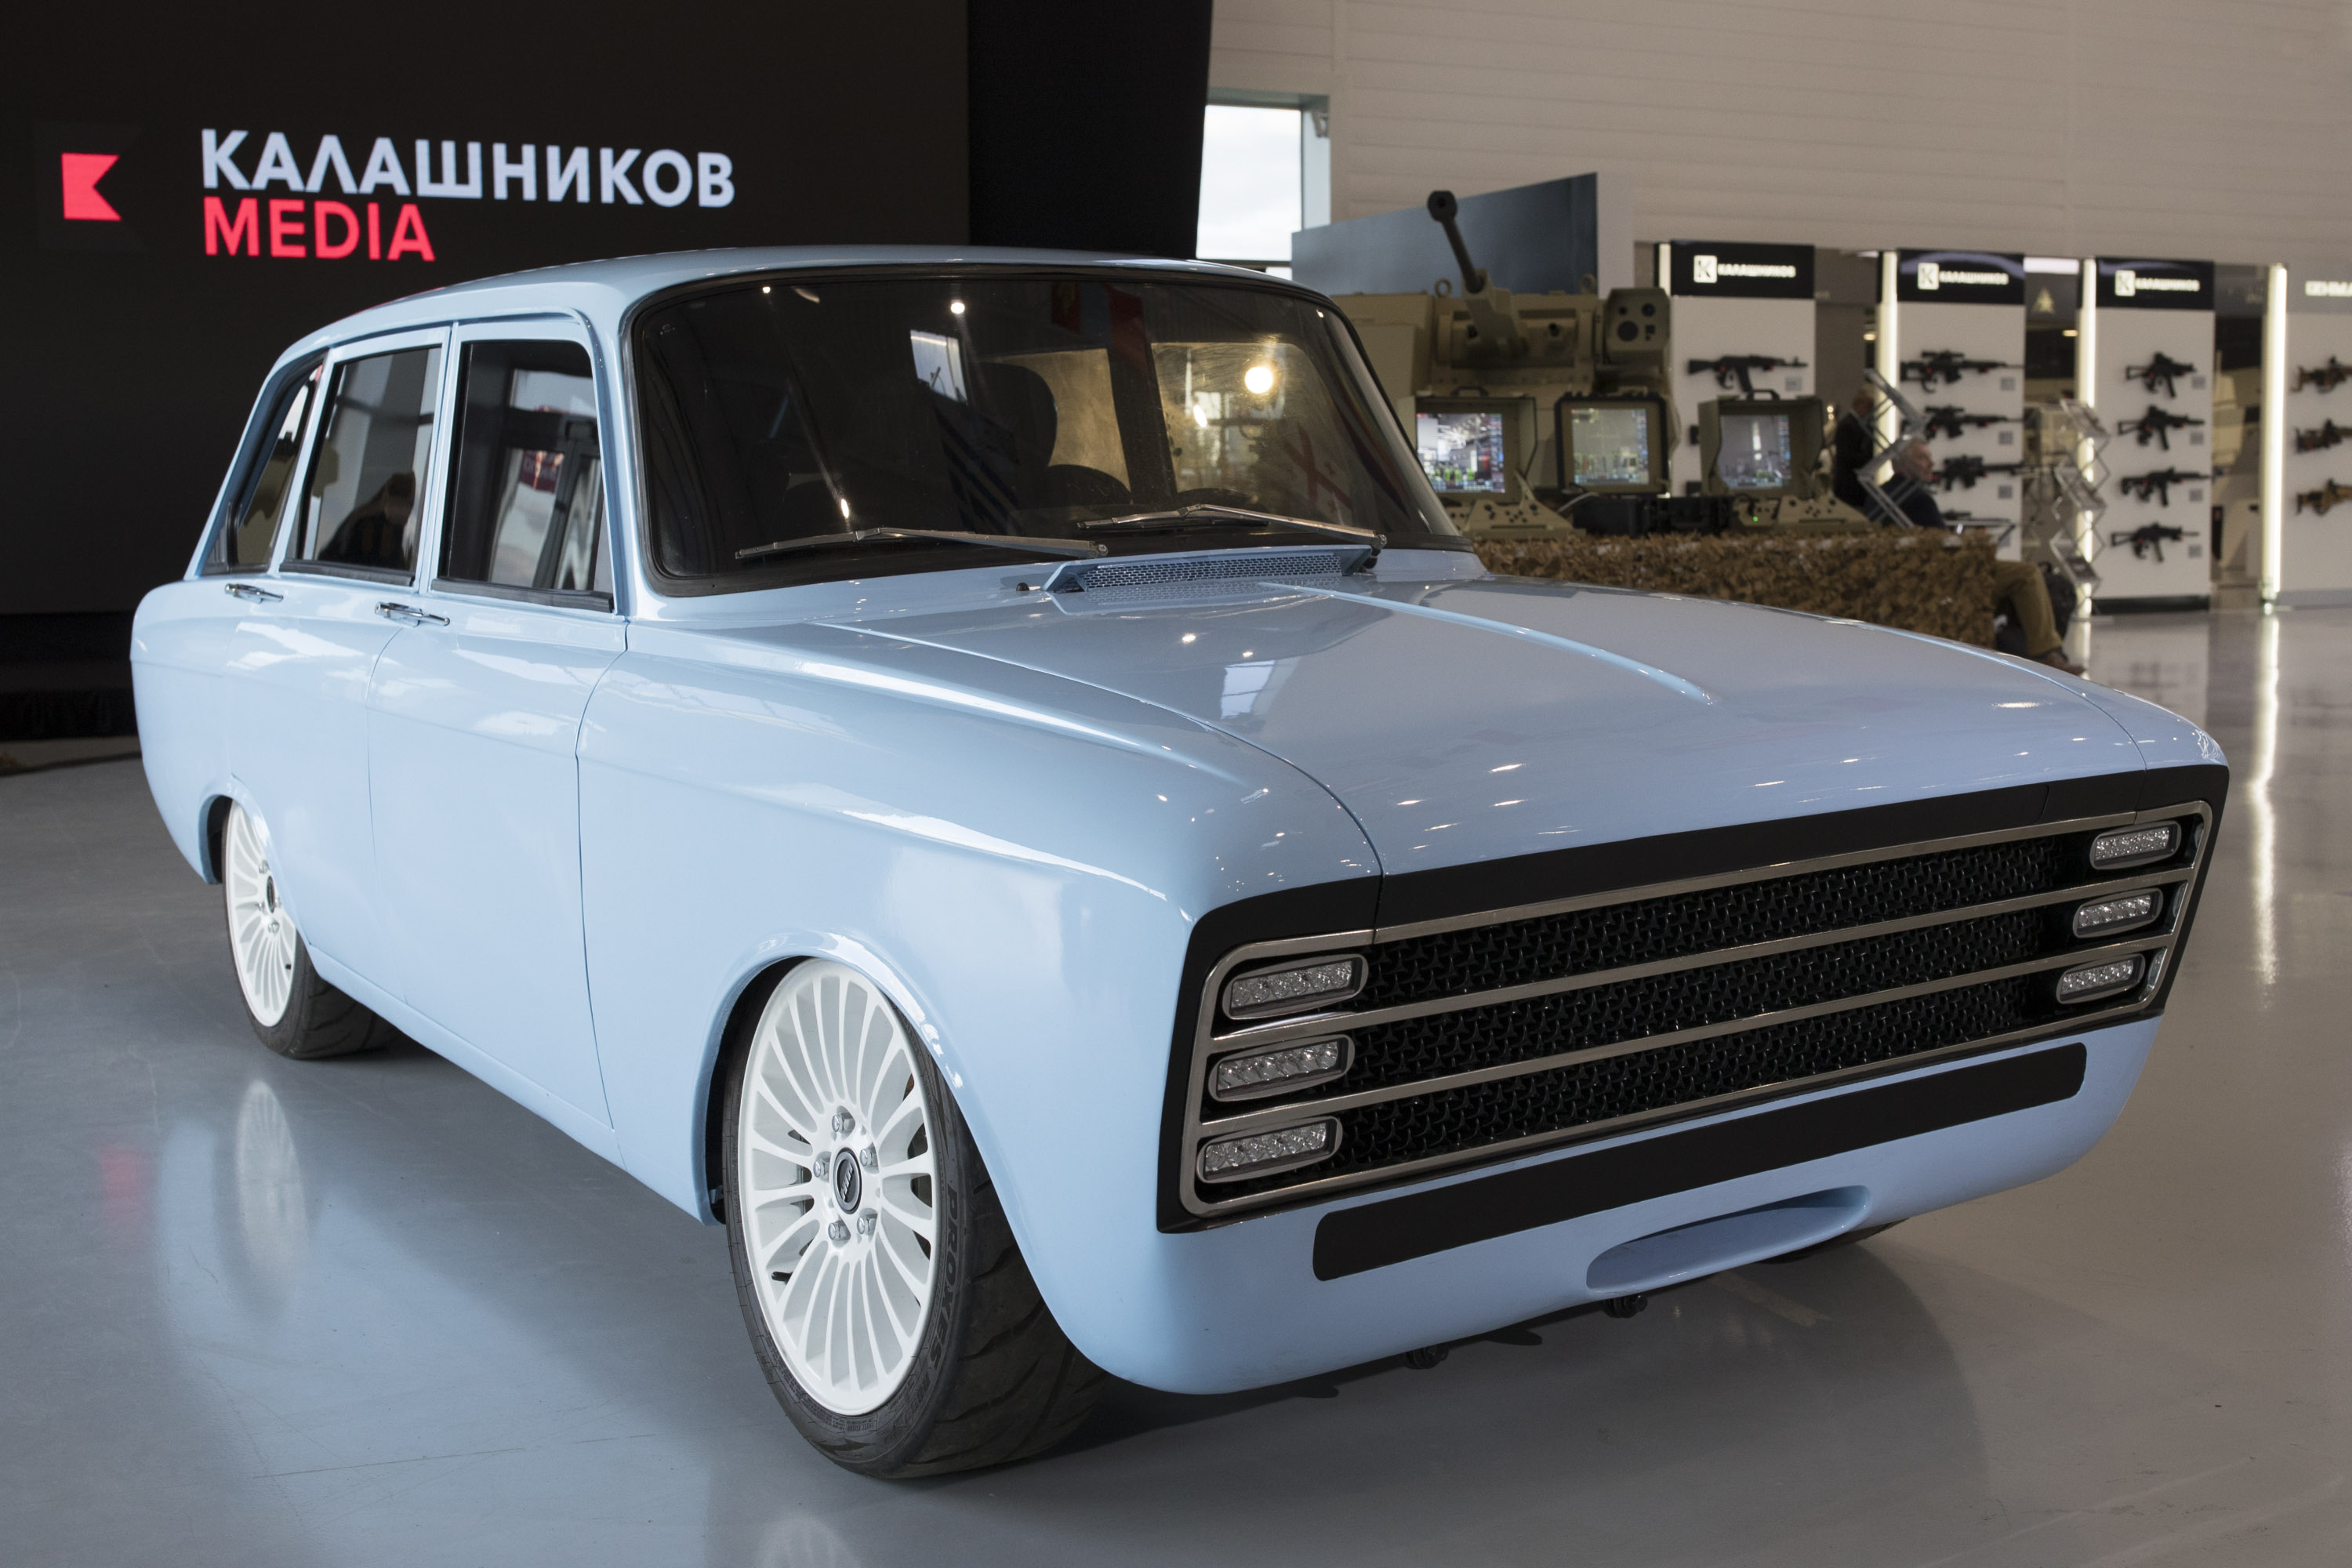 The new CV-1 by Kalashnikov is unique in its design, borrowing from an 1970 Soviet hatchback. Image: Kalashnikov